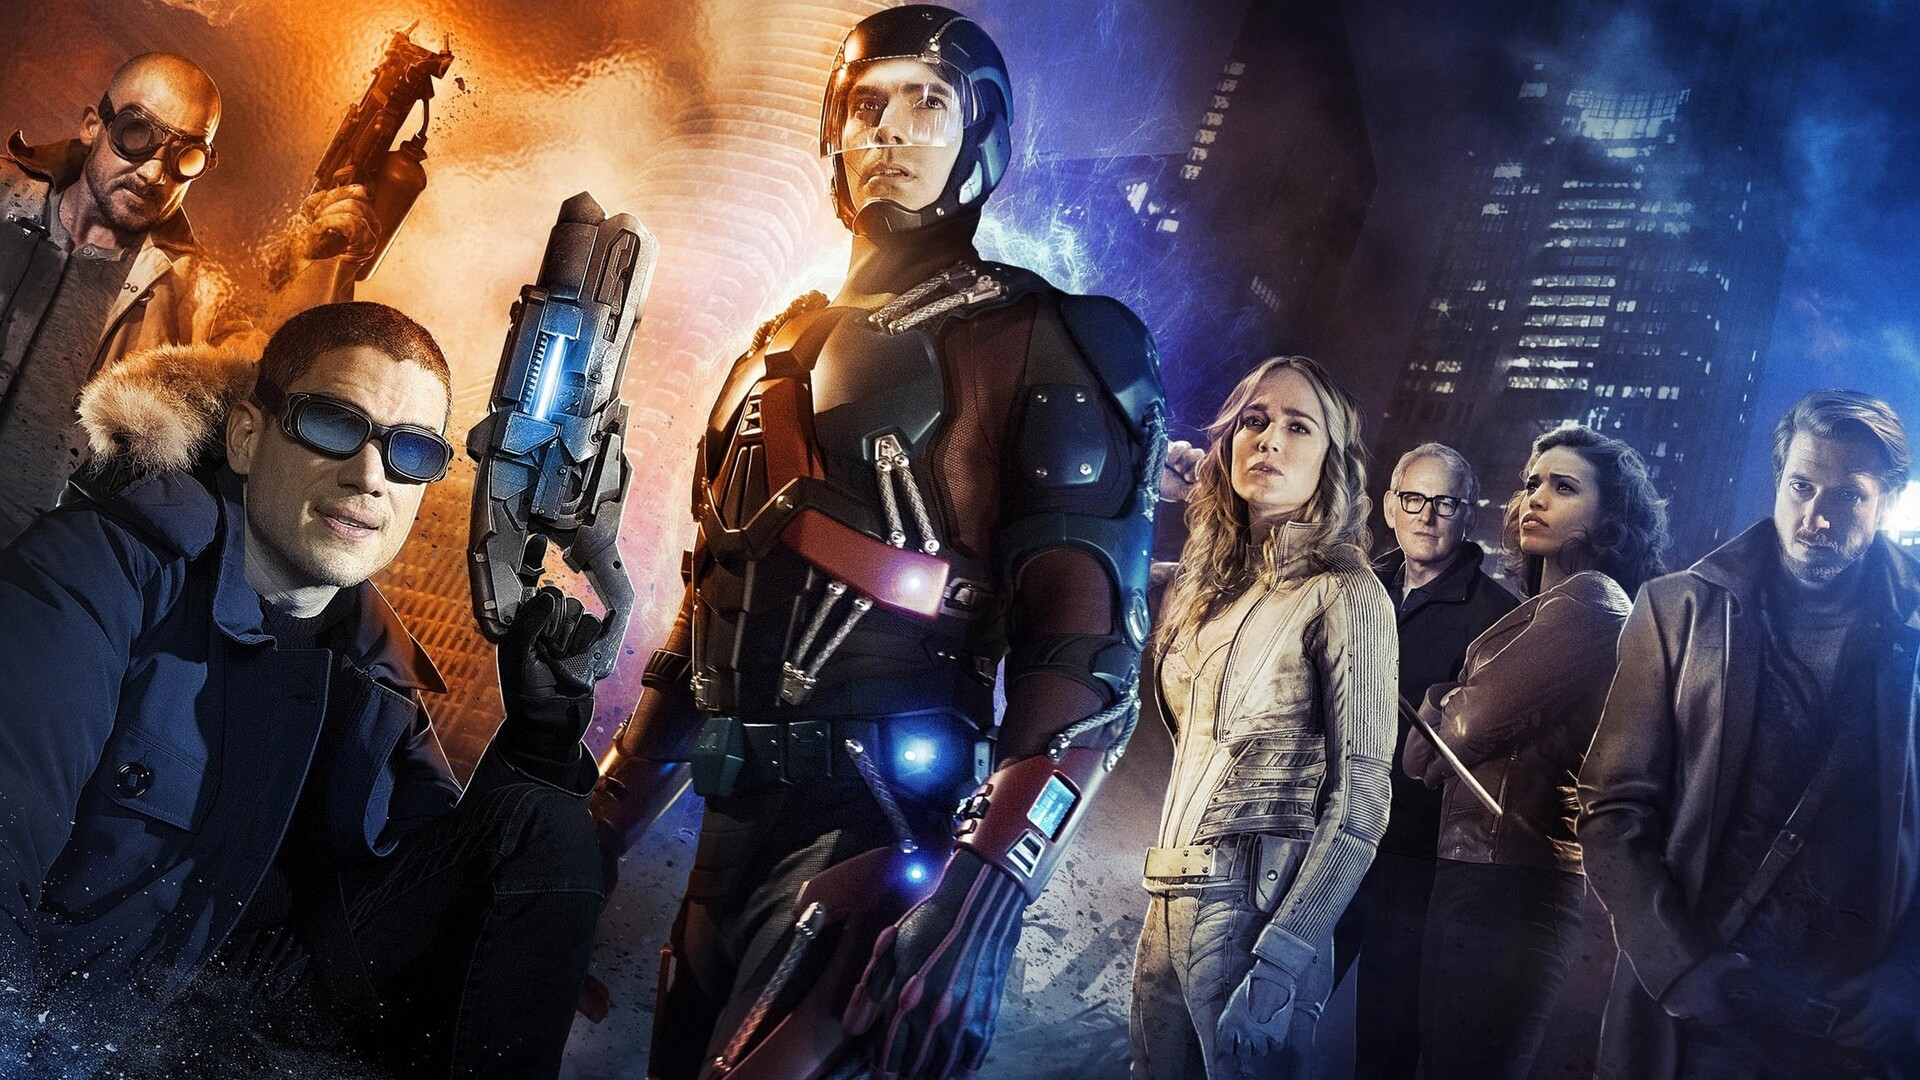 1920x1080 2016 Legends Of Tomorrow Tv Series Laptop Full